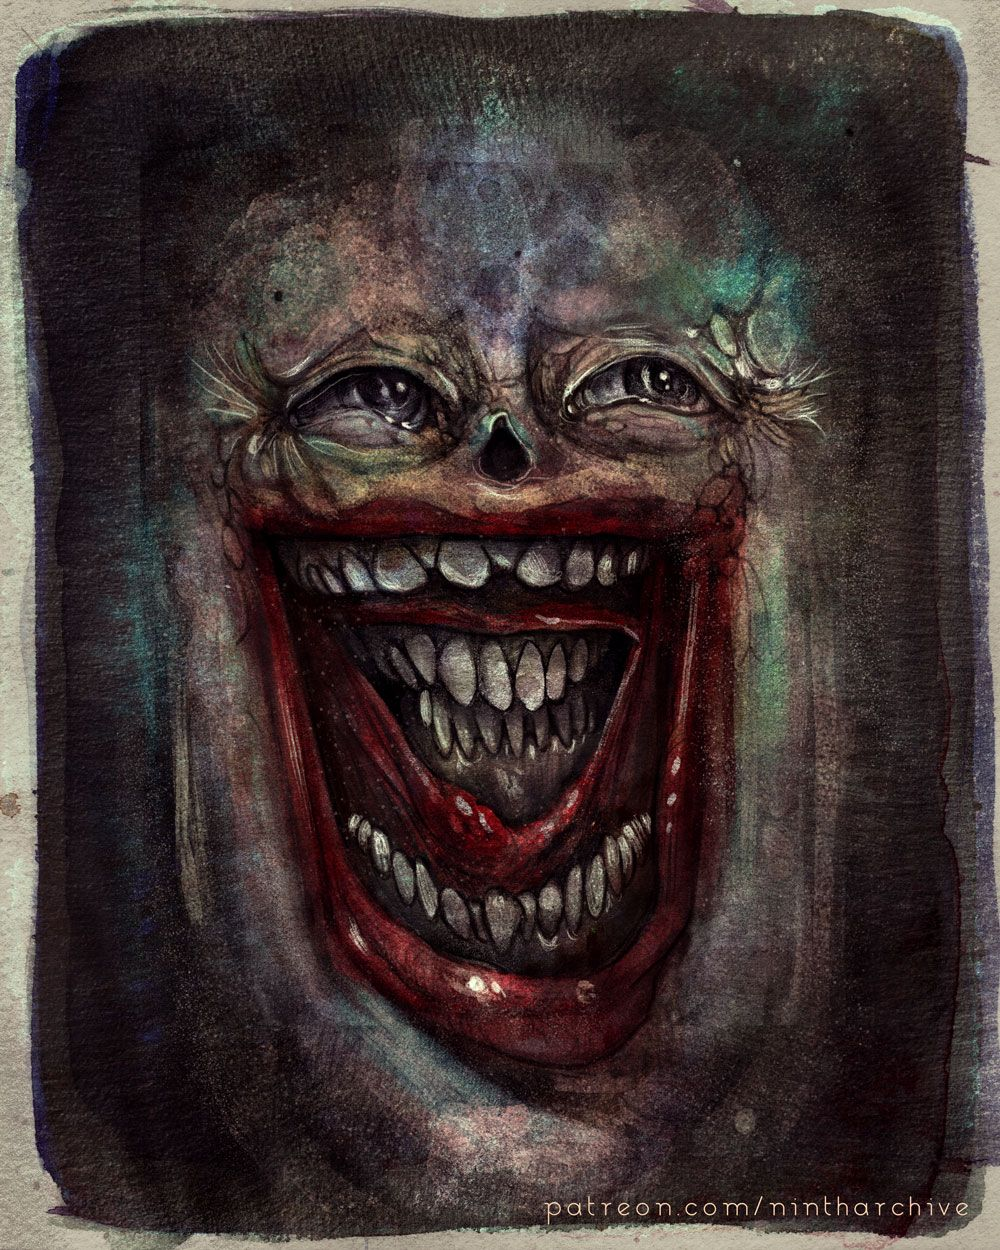 A close-up, dingy face with a mouth inside of its mouth, one laughing, one with teeth clenched.